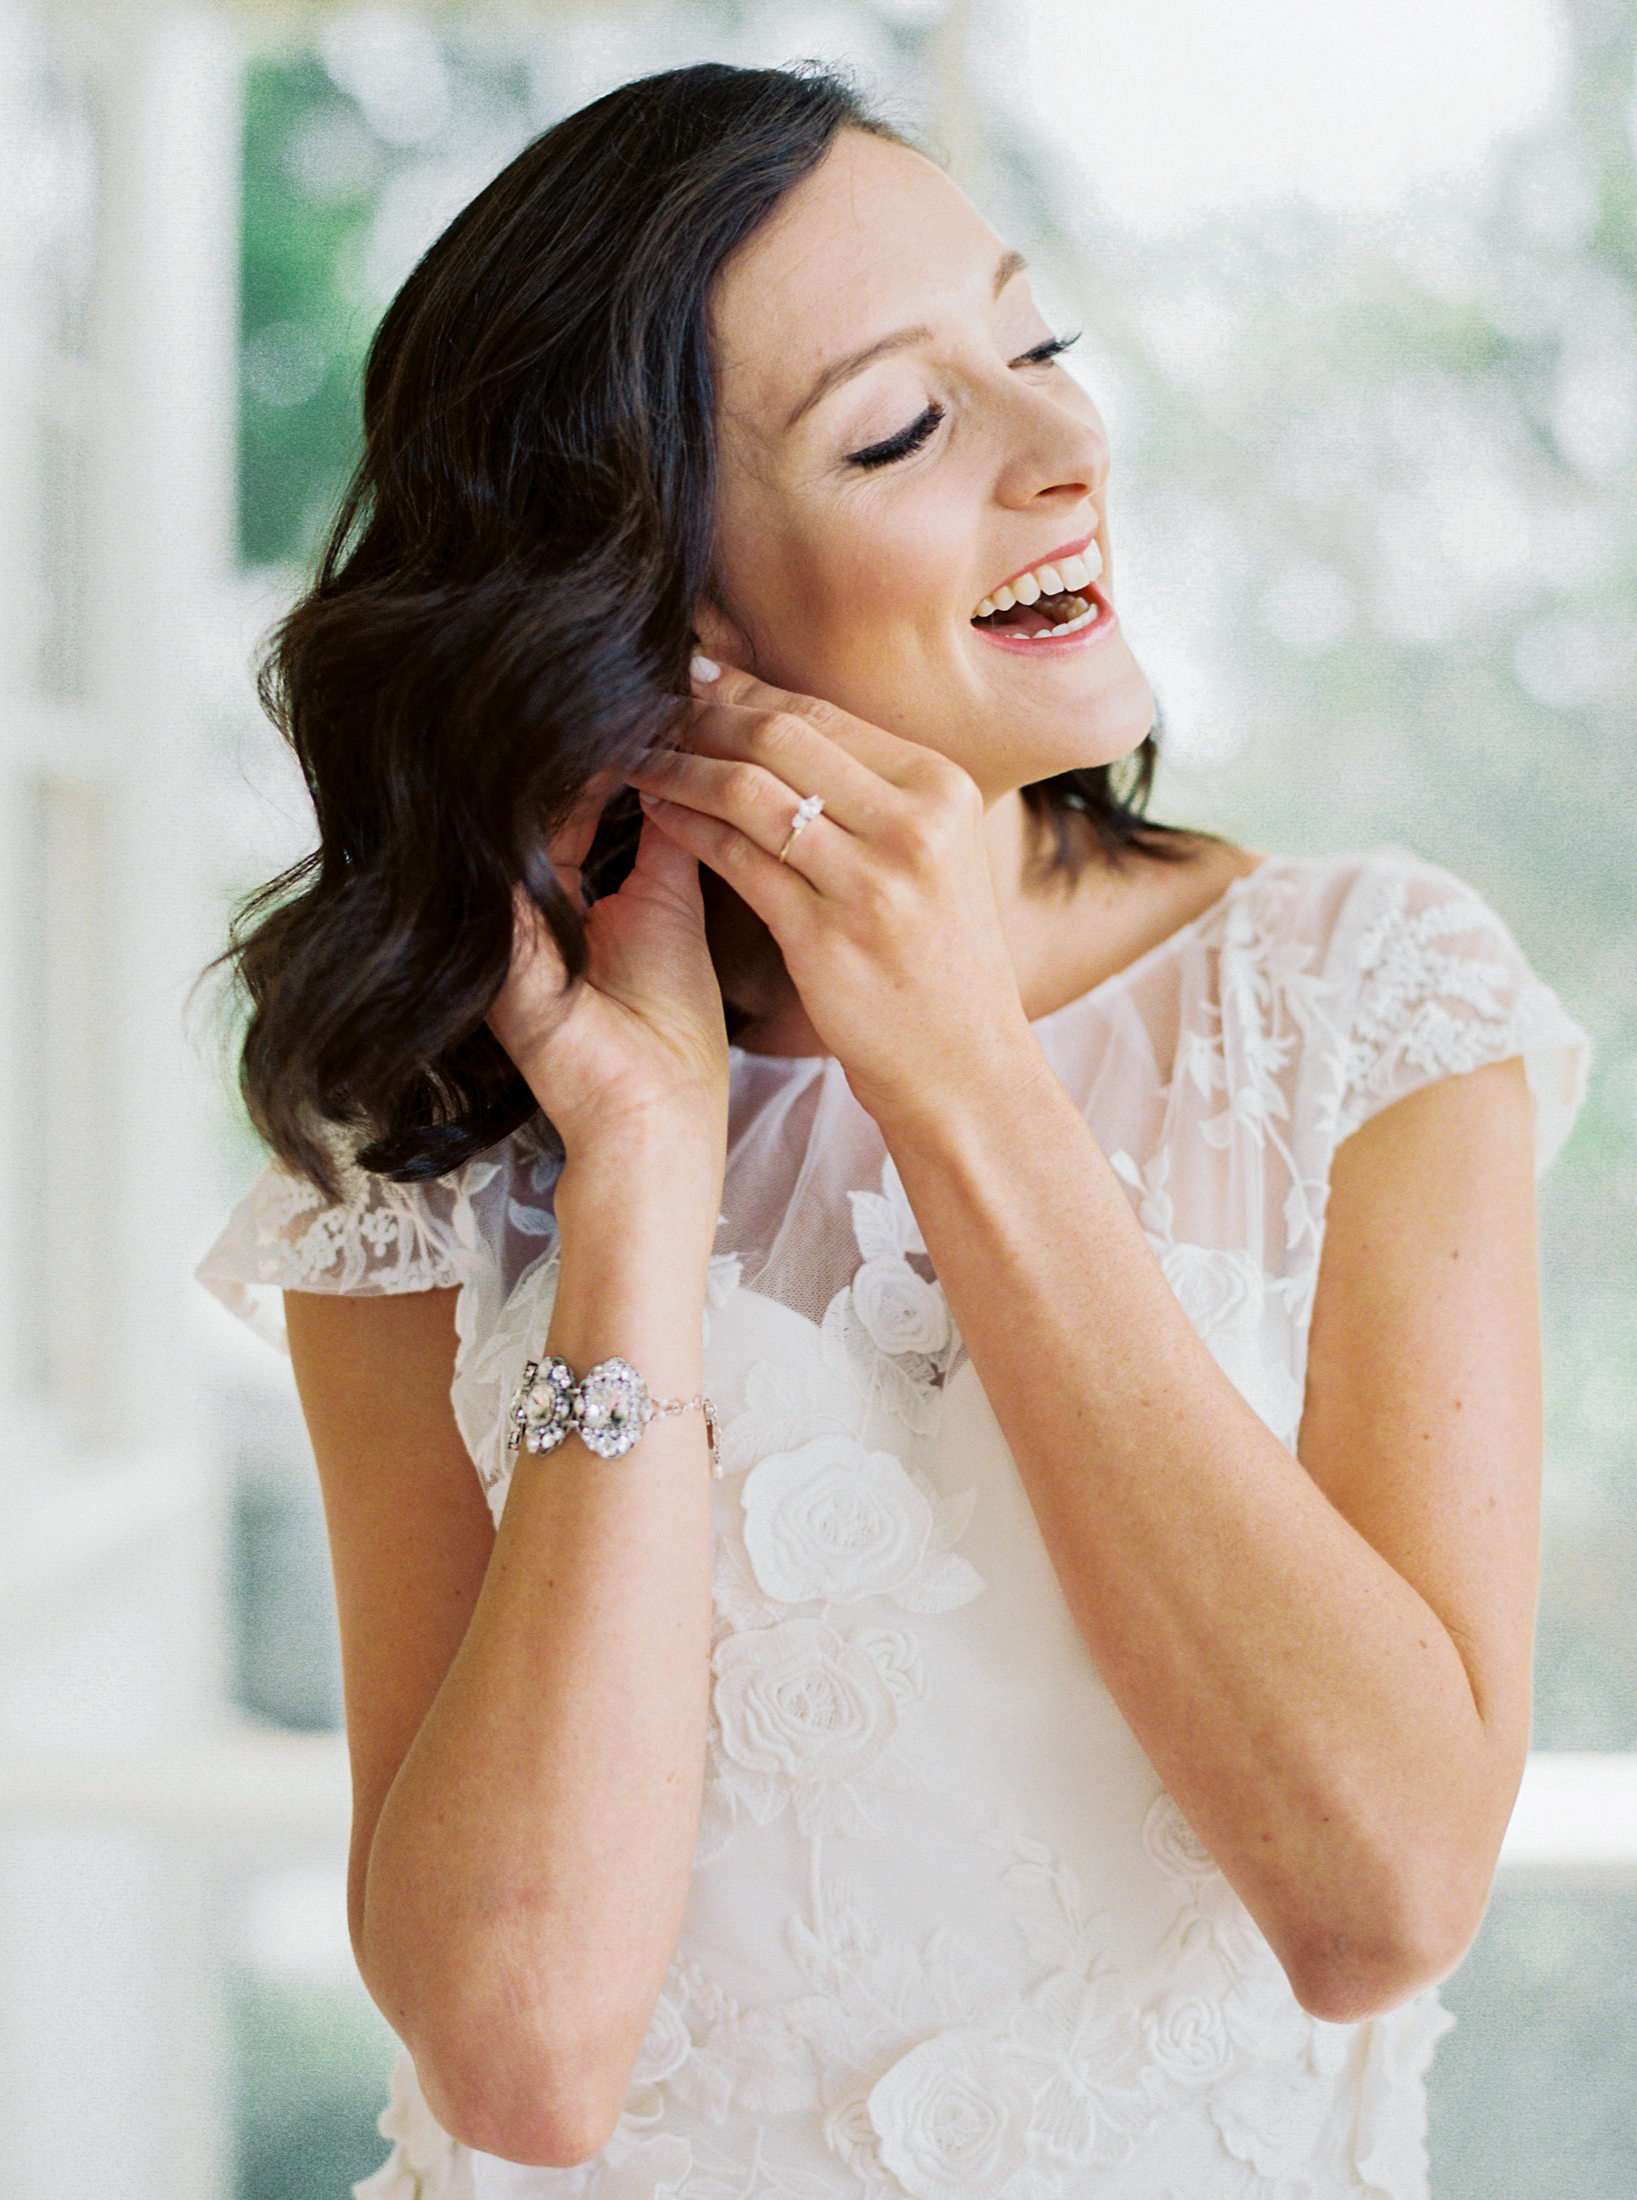 4 Simple Tips to Help Improve the Quality of Your Hair Ahead of Your Wedding